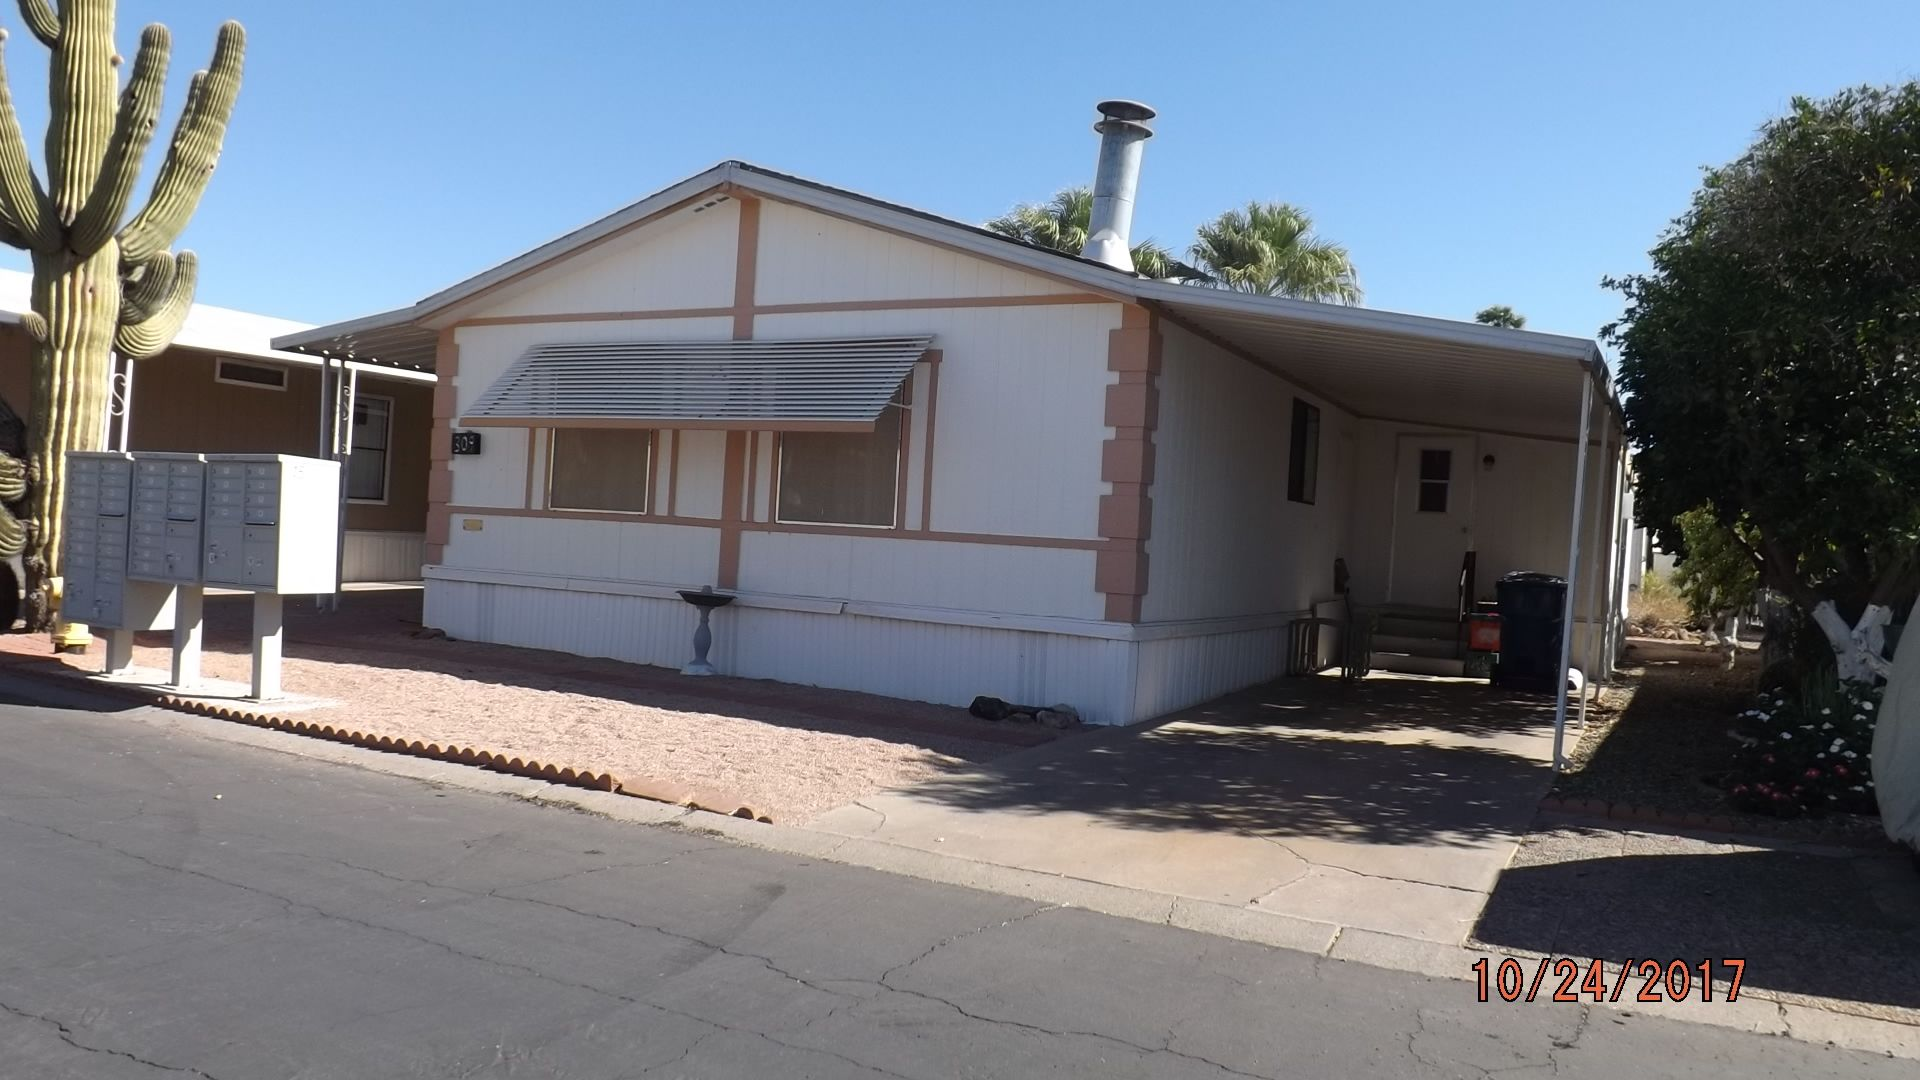 Frontier Mobile Home For Sale in Phoenix AZ, 85027 ...